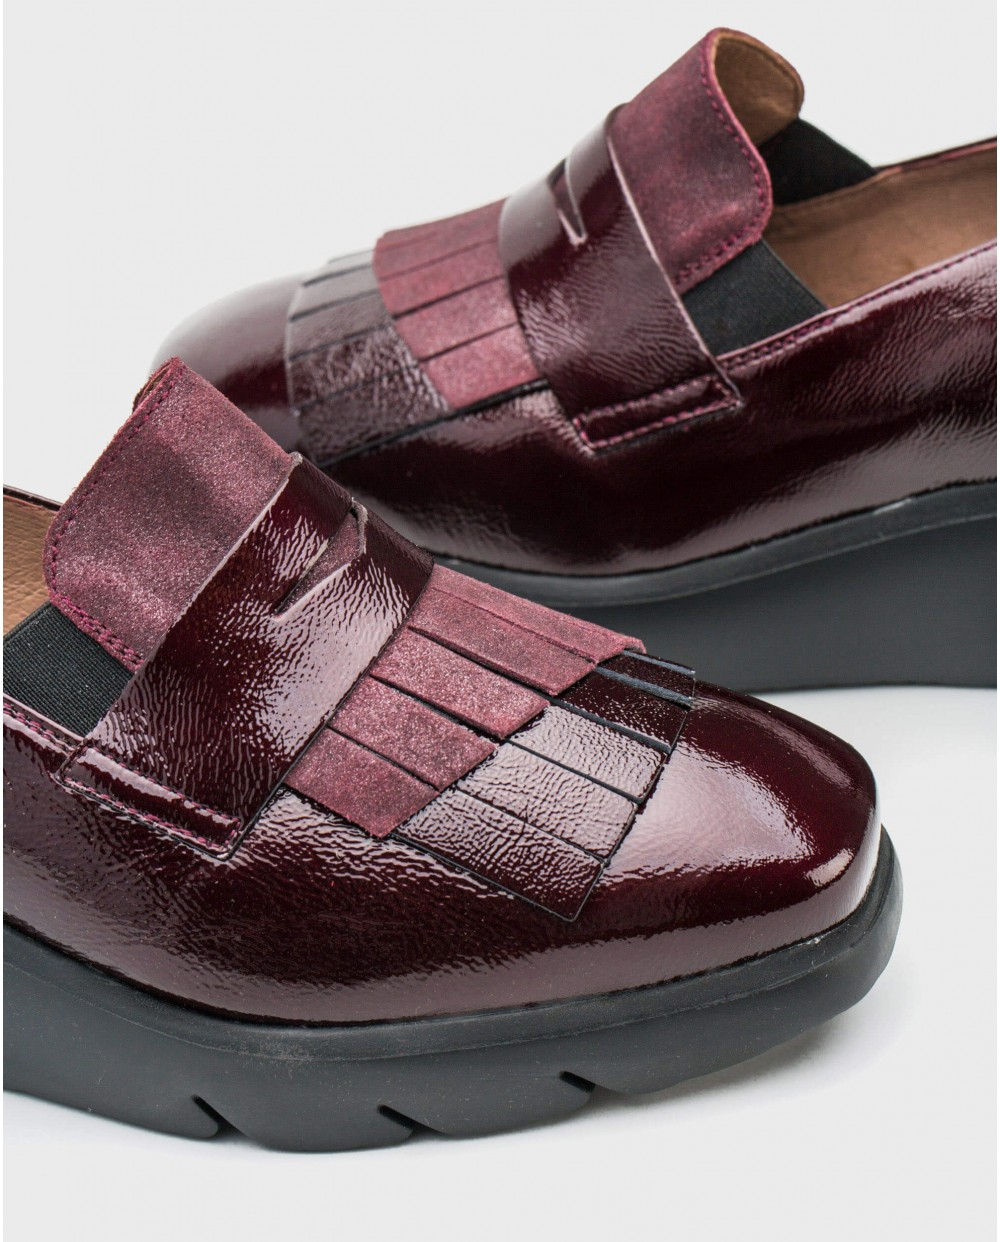 Wonders-Flat Shoes-Penny loafers with tassel detail